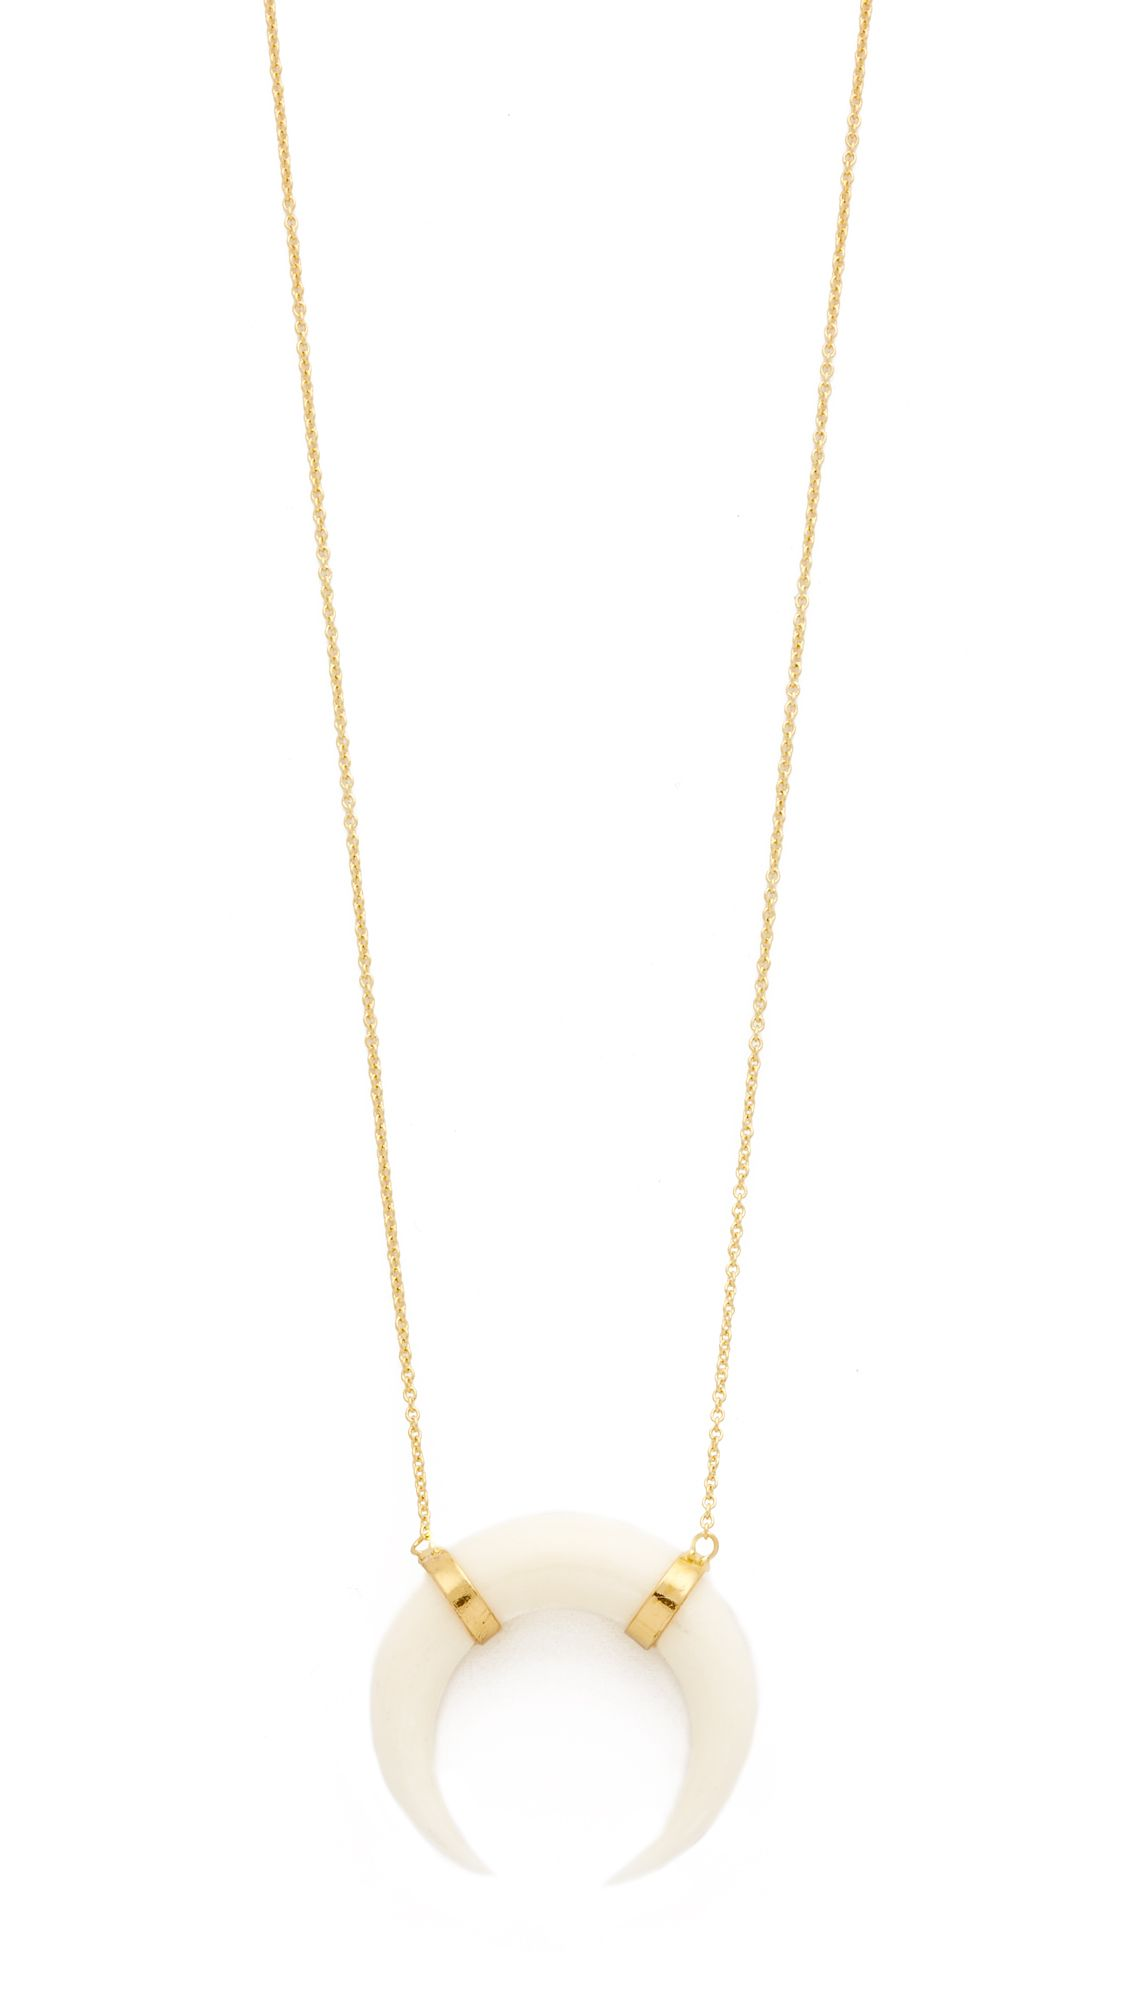 Jacquie Aiche Double Bone Horn Necklace in Metallic Gold Zv0G7rd8